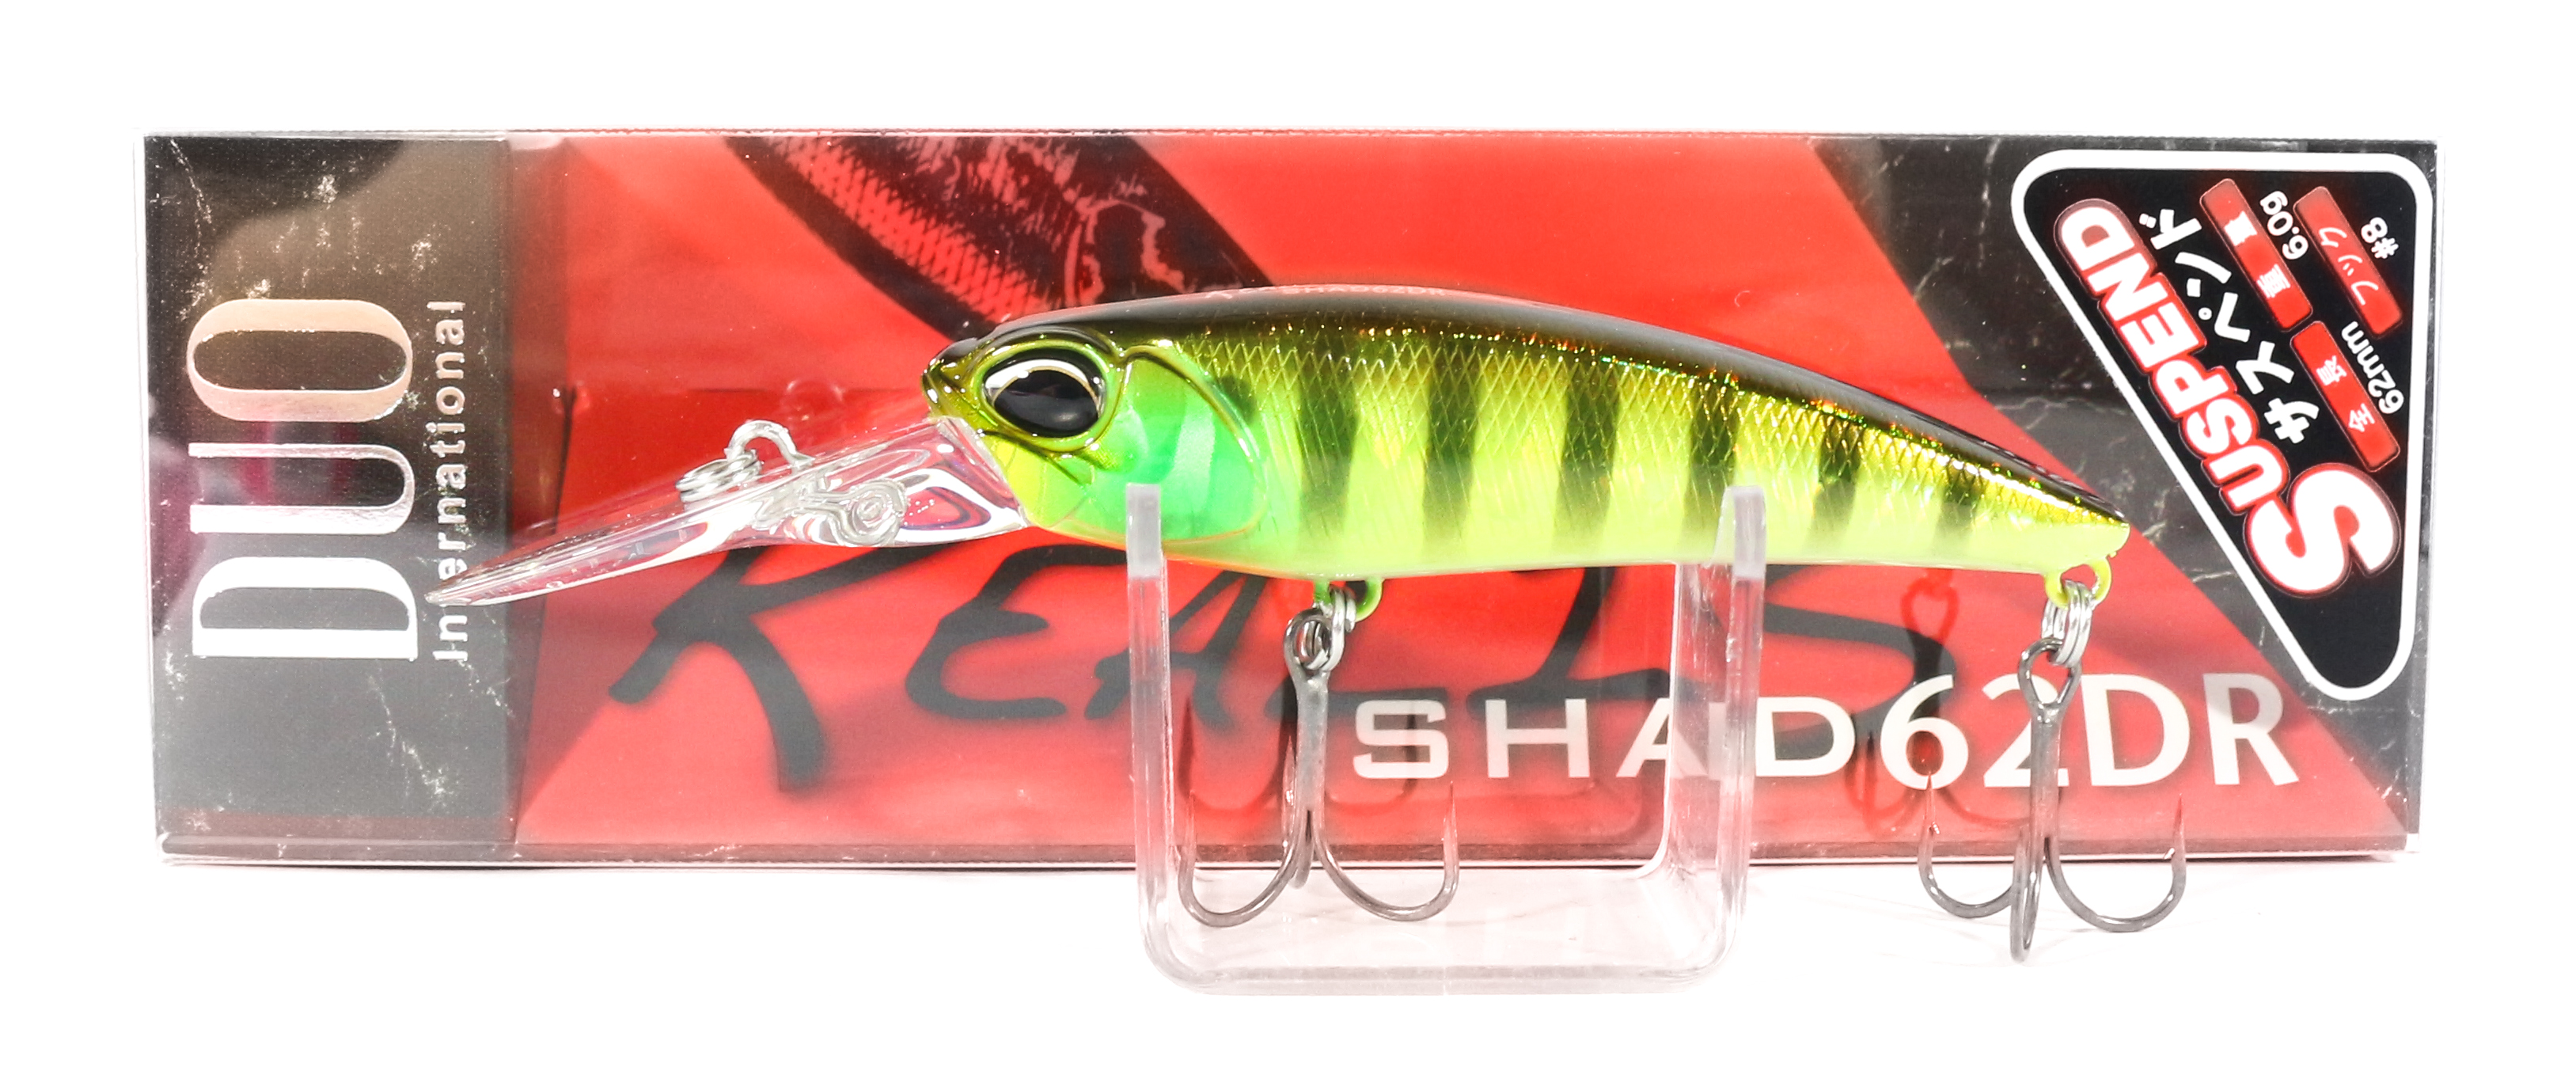 Duo Realis Shad 62 DR Suspend Lure AJA3055 (4418)